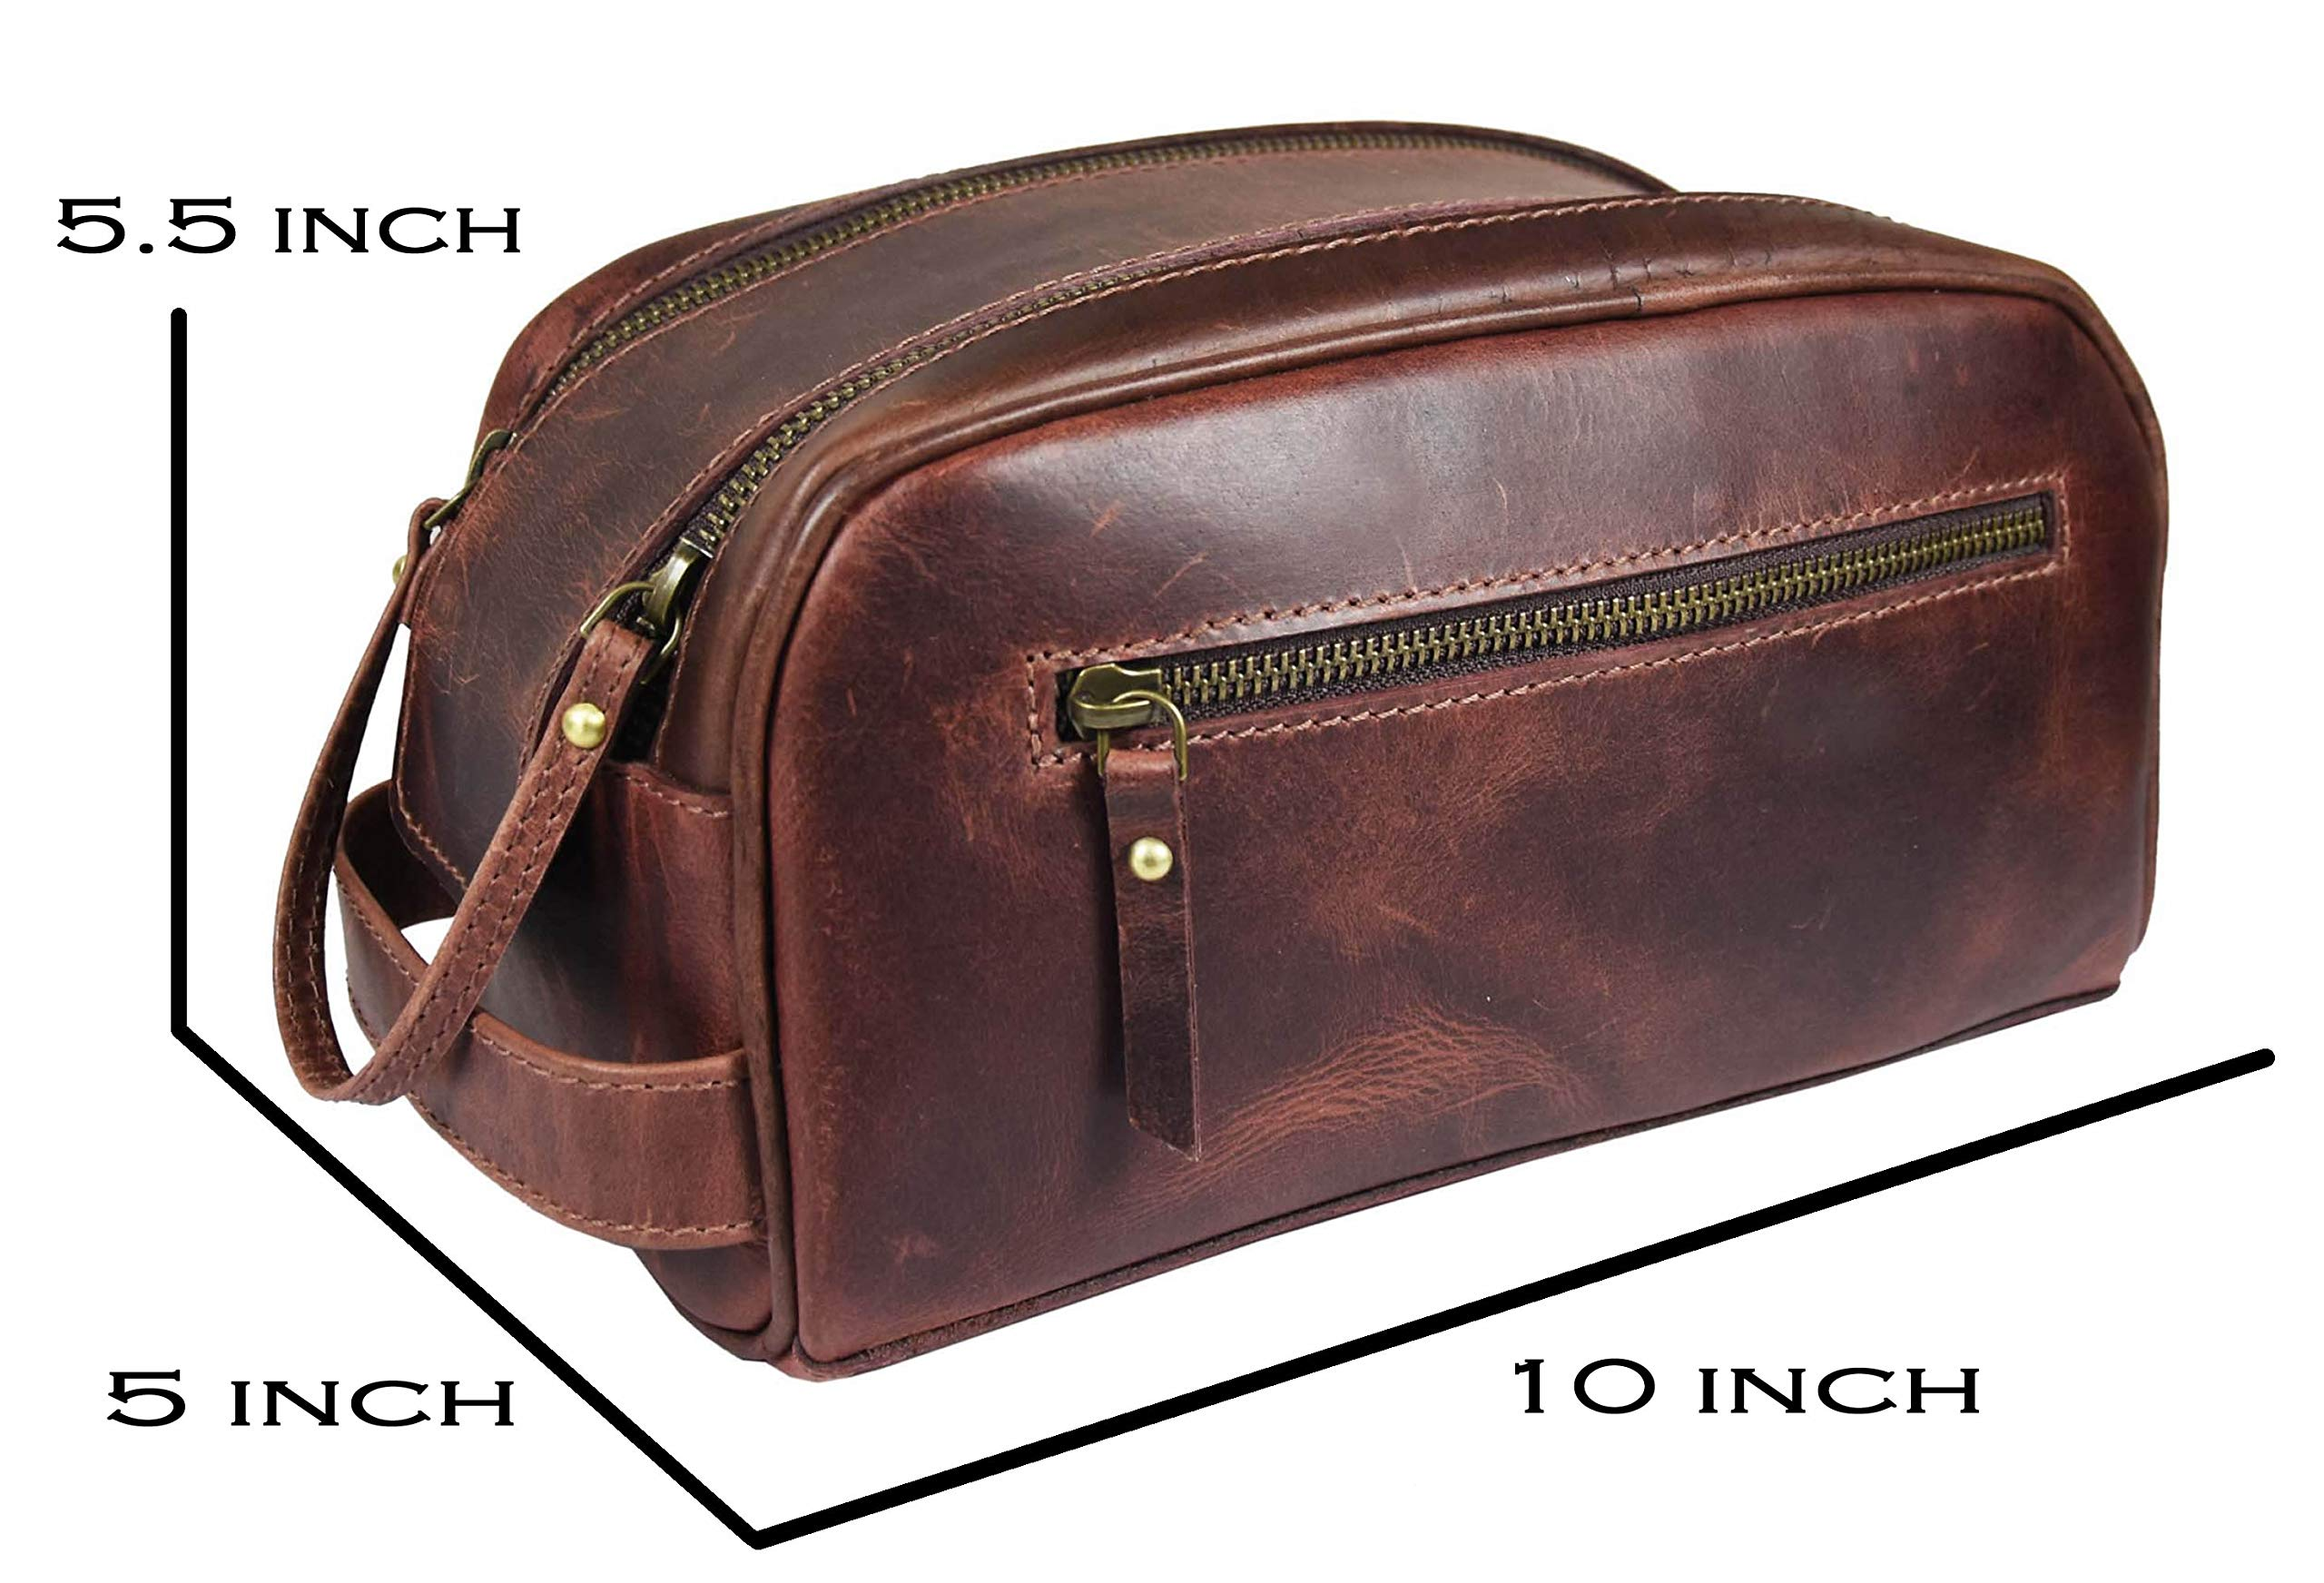 Leather Toiletry Bag for Men | Grooming Travel Kit | By Aaron Leather (Walnut - Dual Zipper) by AARON LEATHER GOODS VENDIMIA ESTILO (Image #3)